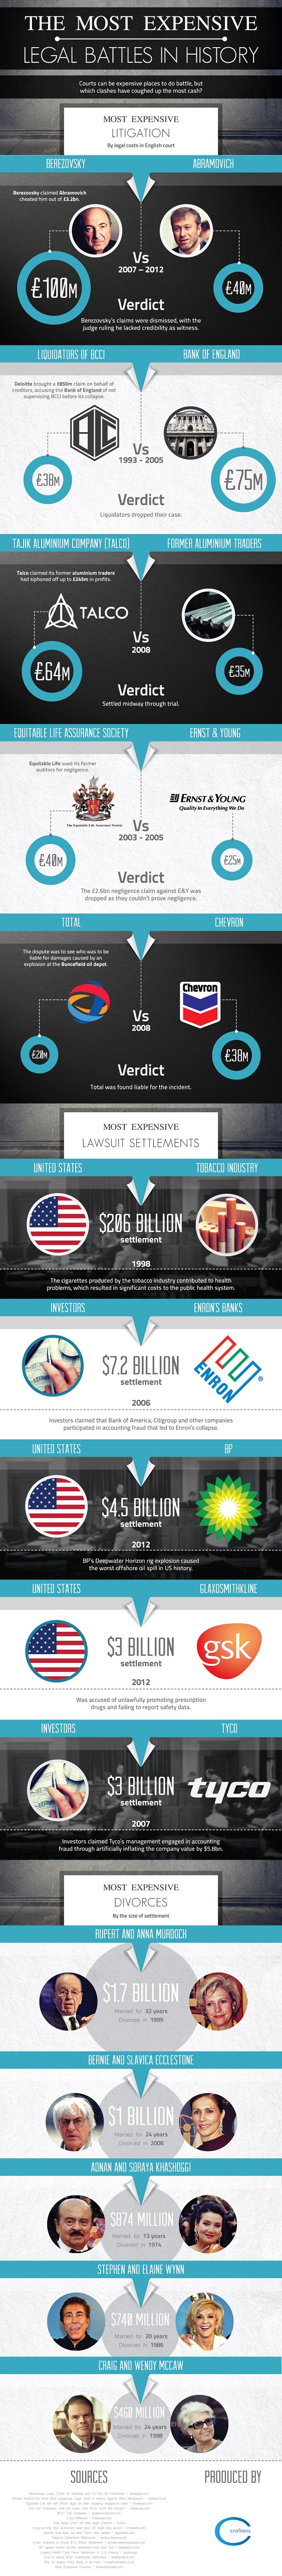 History of Legal Wars That Turned out too Expensive Infographic